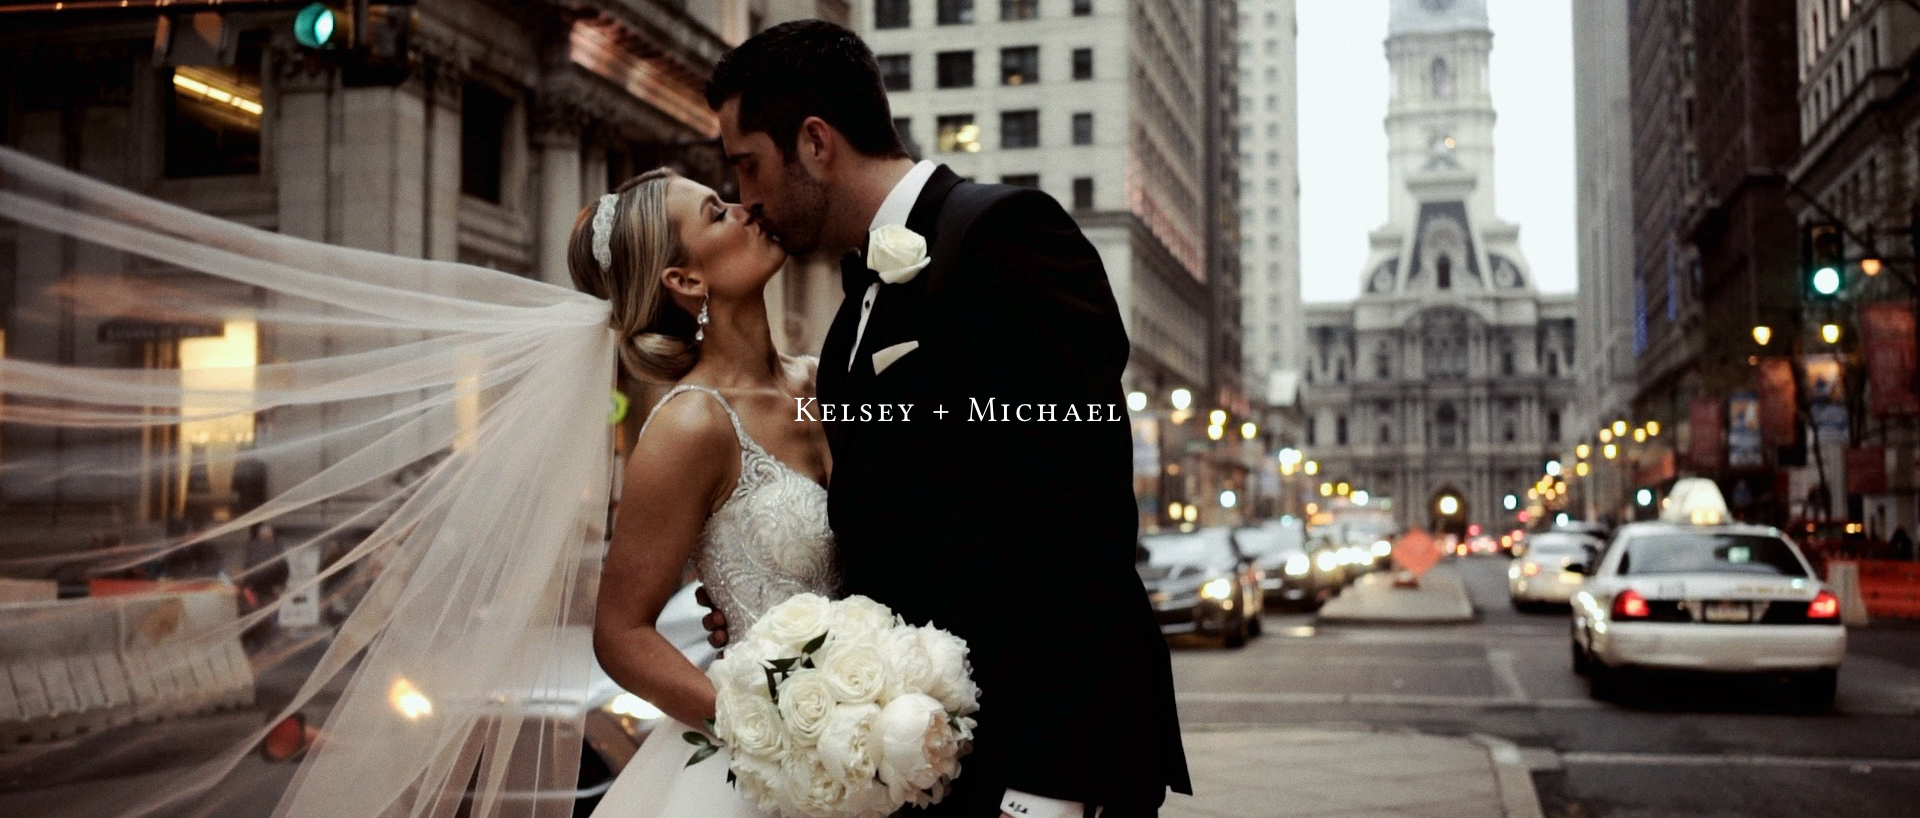 kelsey-and-mike.jpg